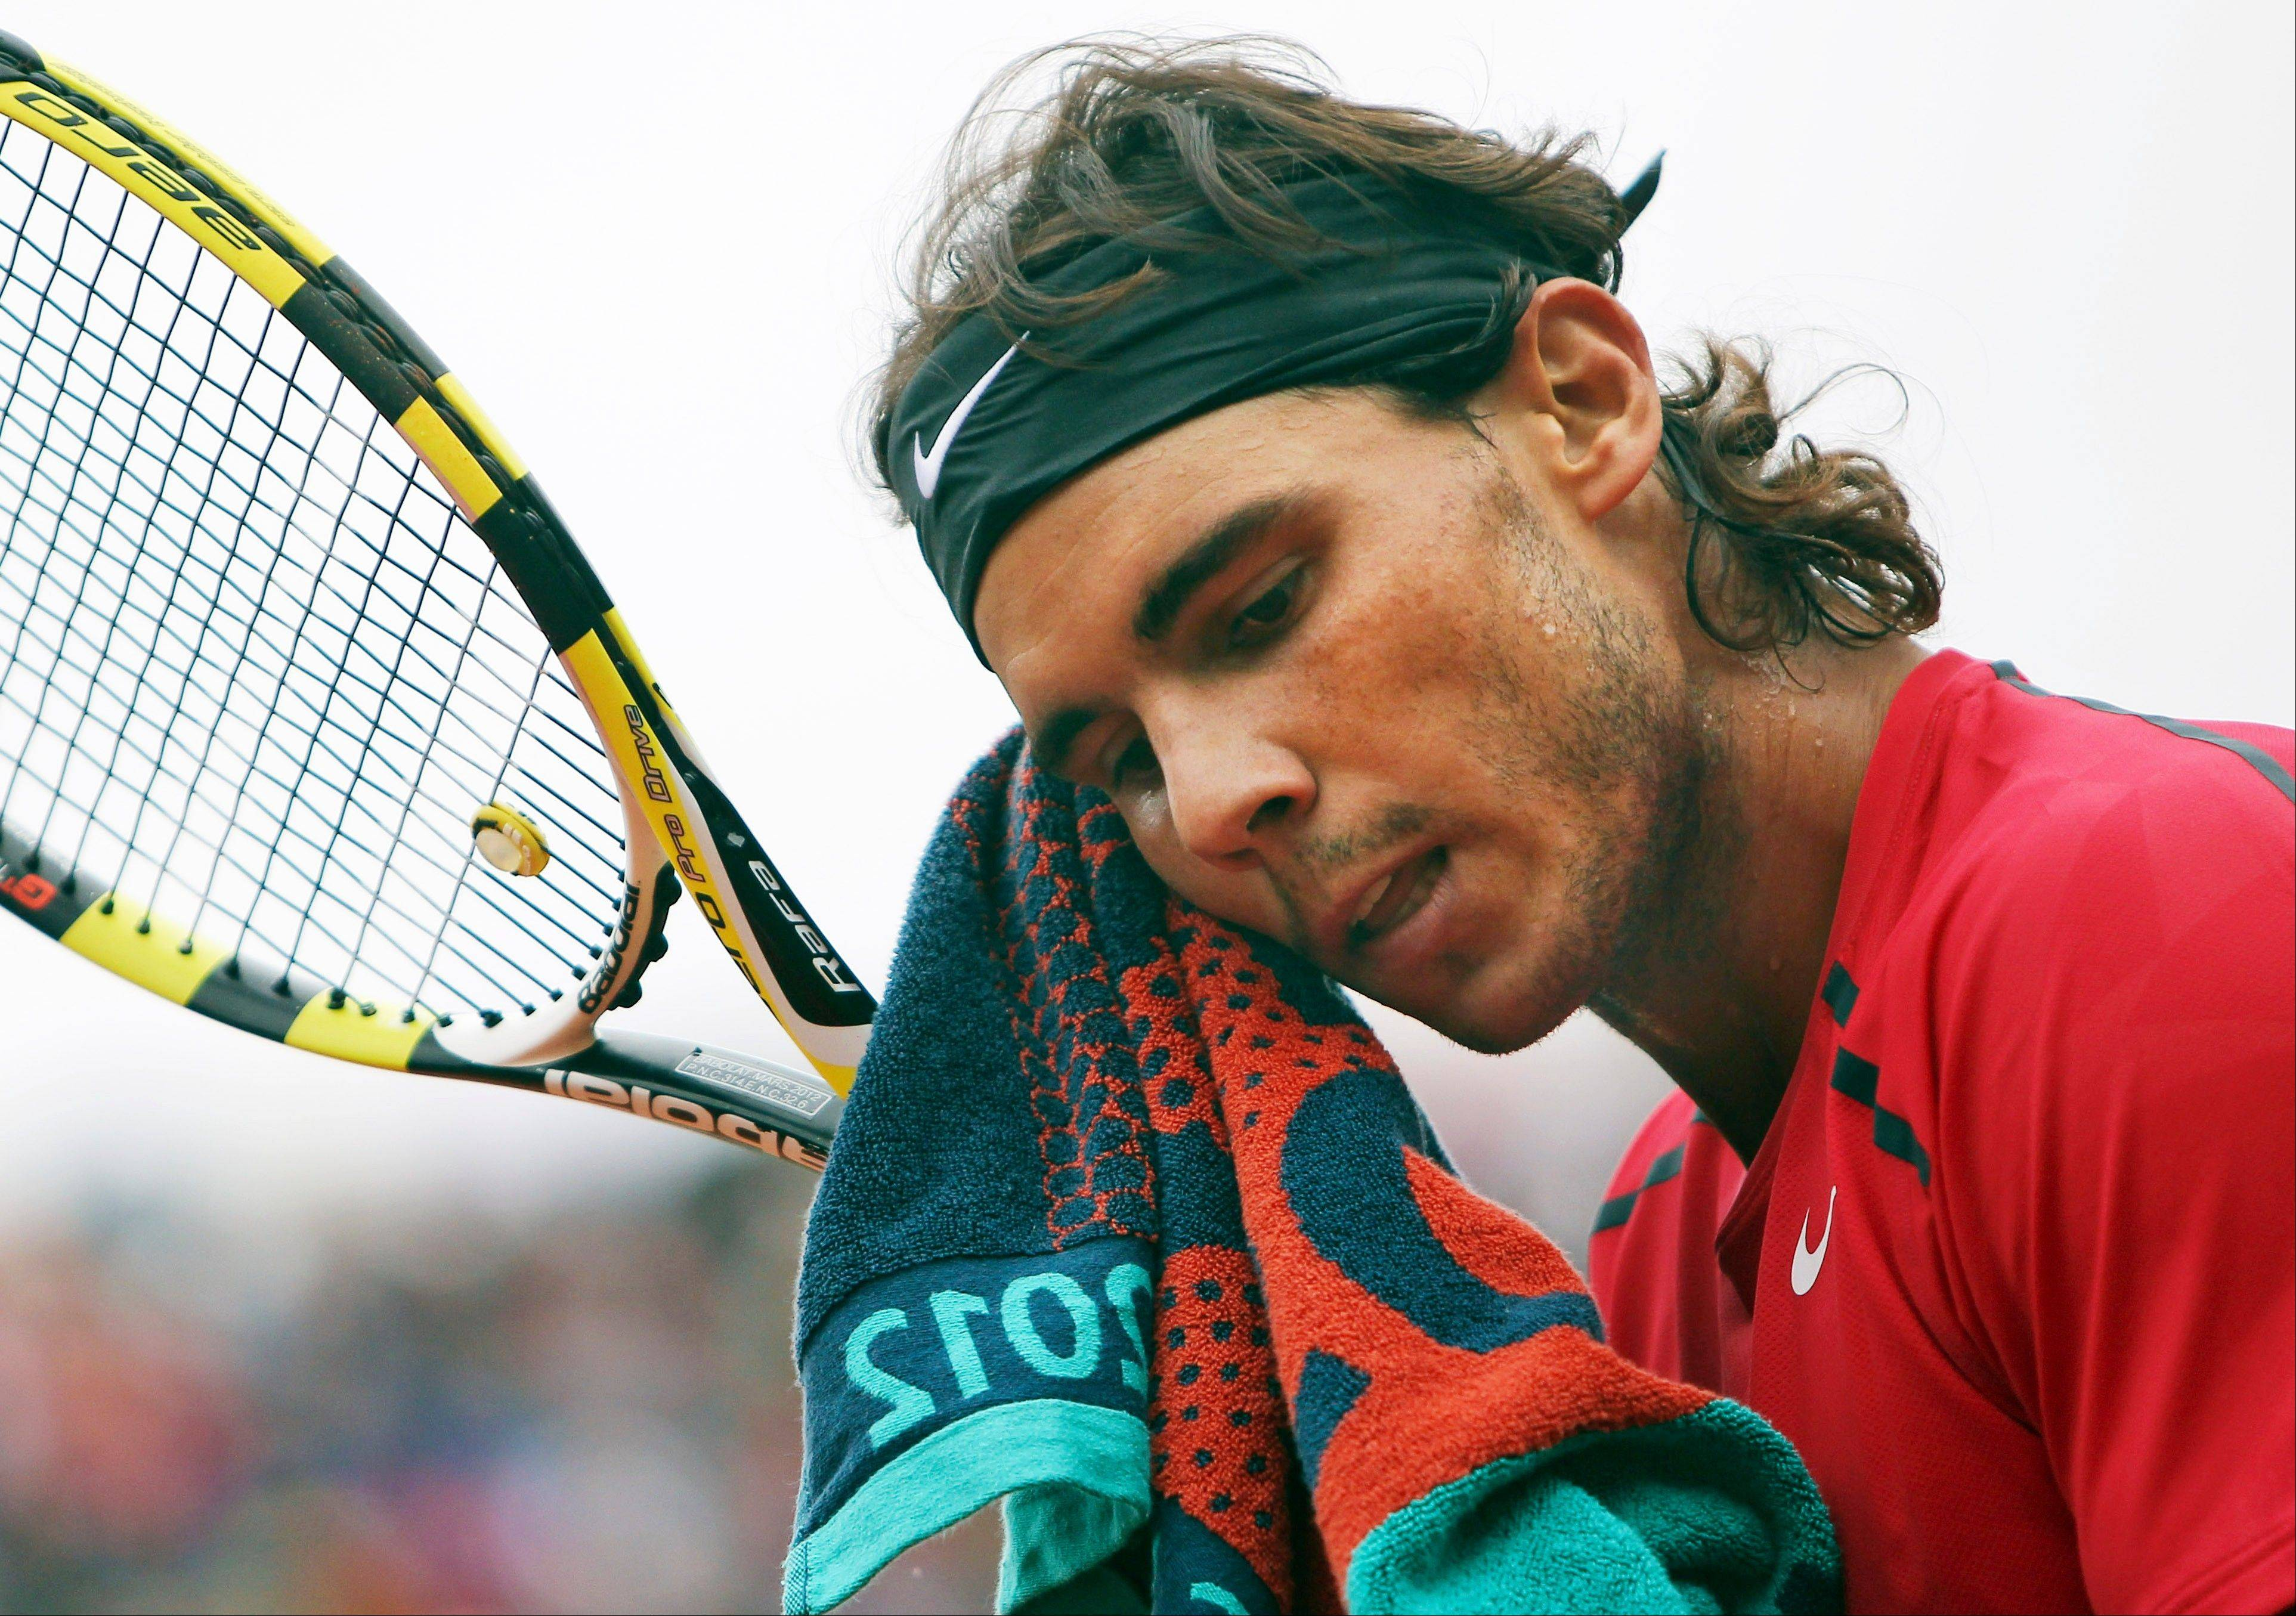 Spain�s Rafael Nadal wipes his face as he plays Serbia�s Novak Djokovic during their men�s final match in the French Open tennis tournament. Nadal will miss the Australian Open because of a stomach virus.